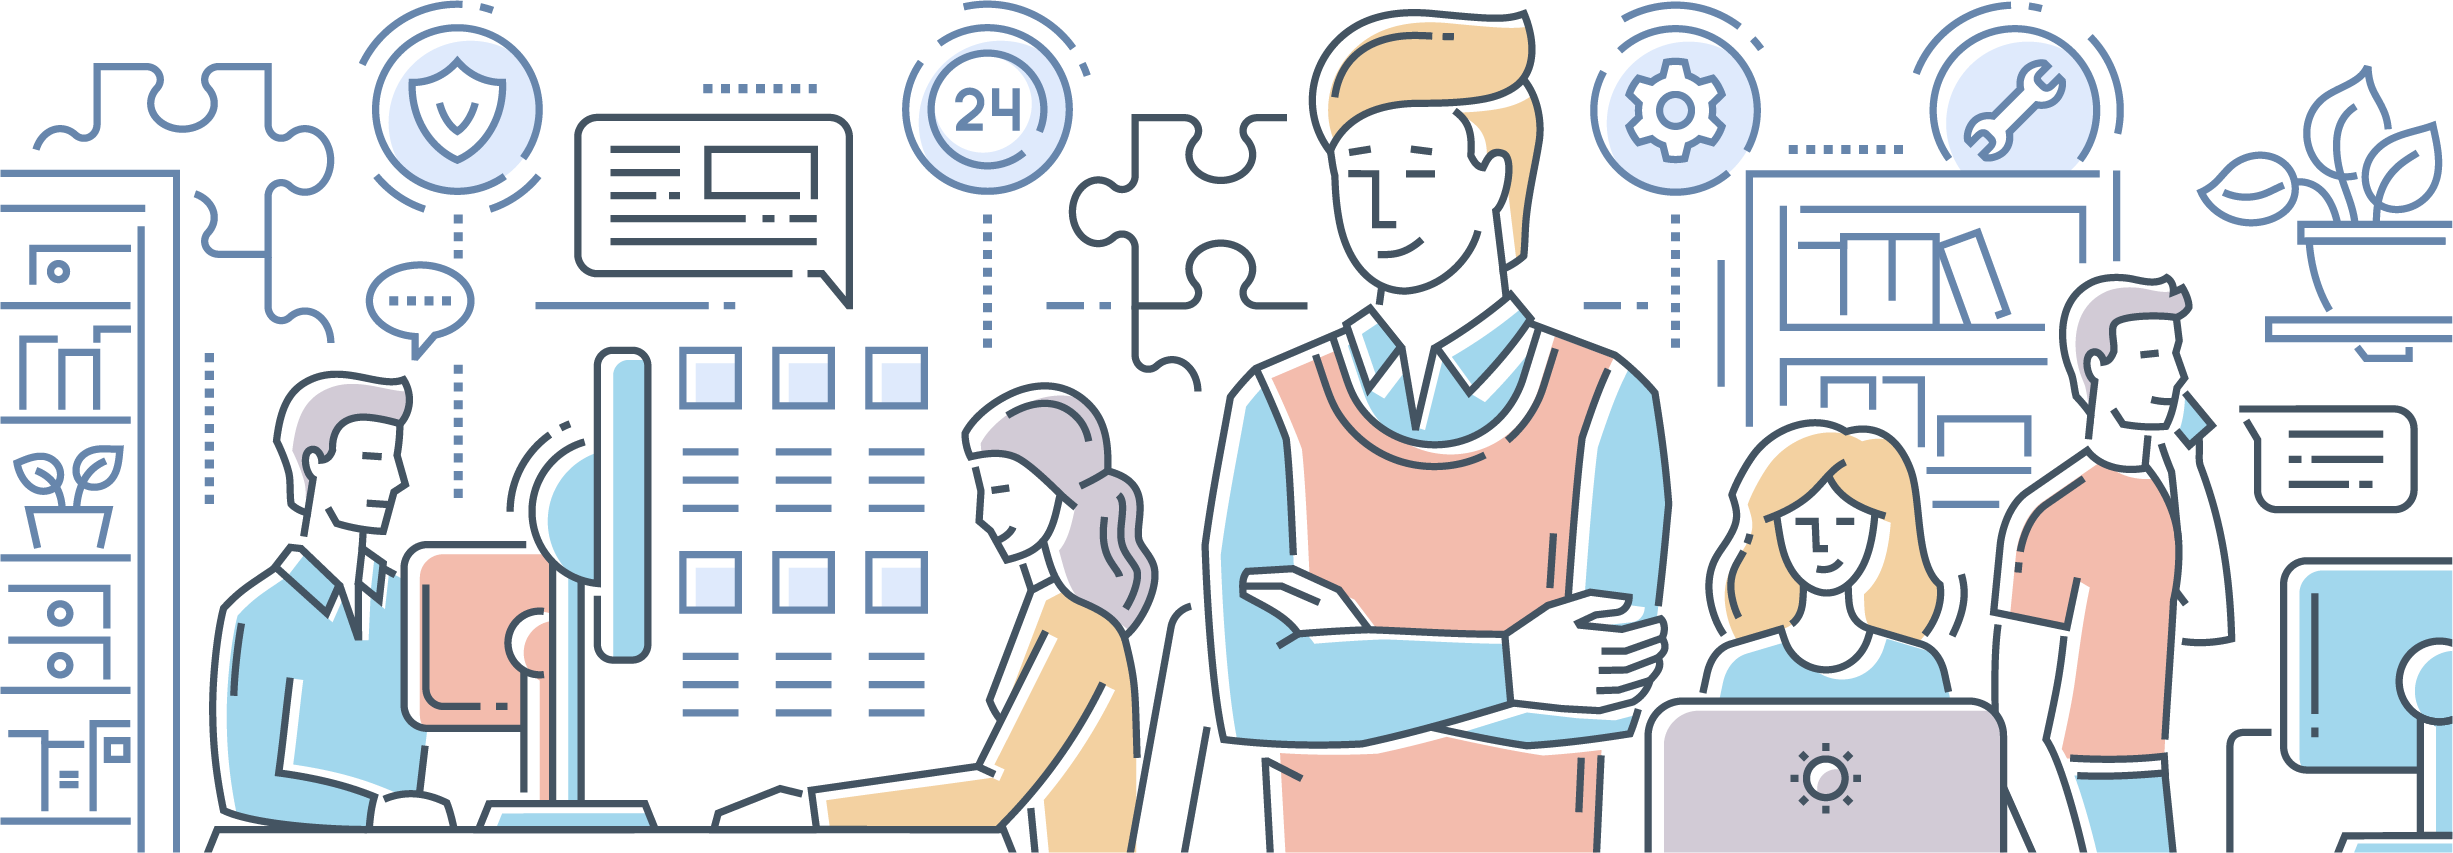 If You Are A Human And Are Seeing This Field, Please - Our Services Team Work Images Vector Clipart (2453x853), Png Download